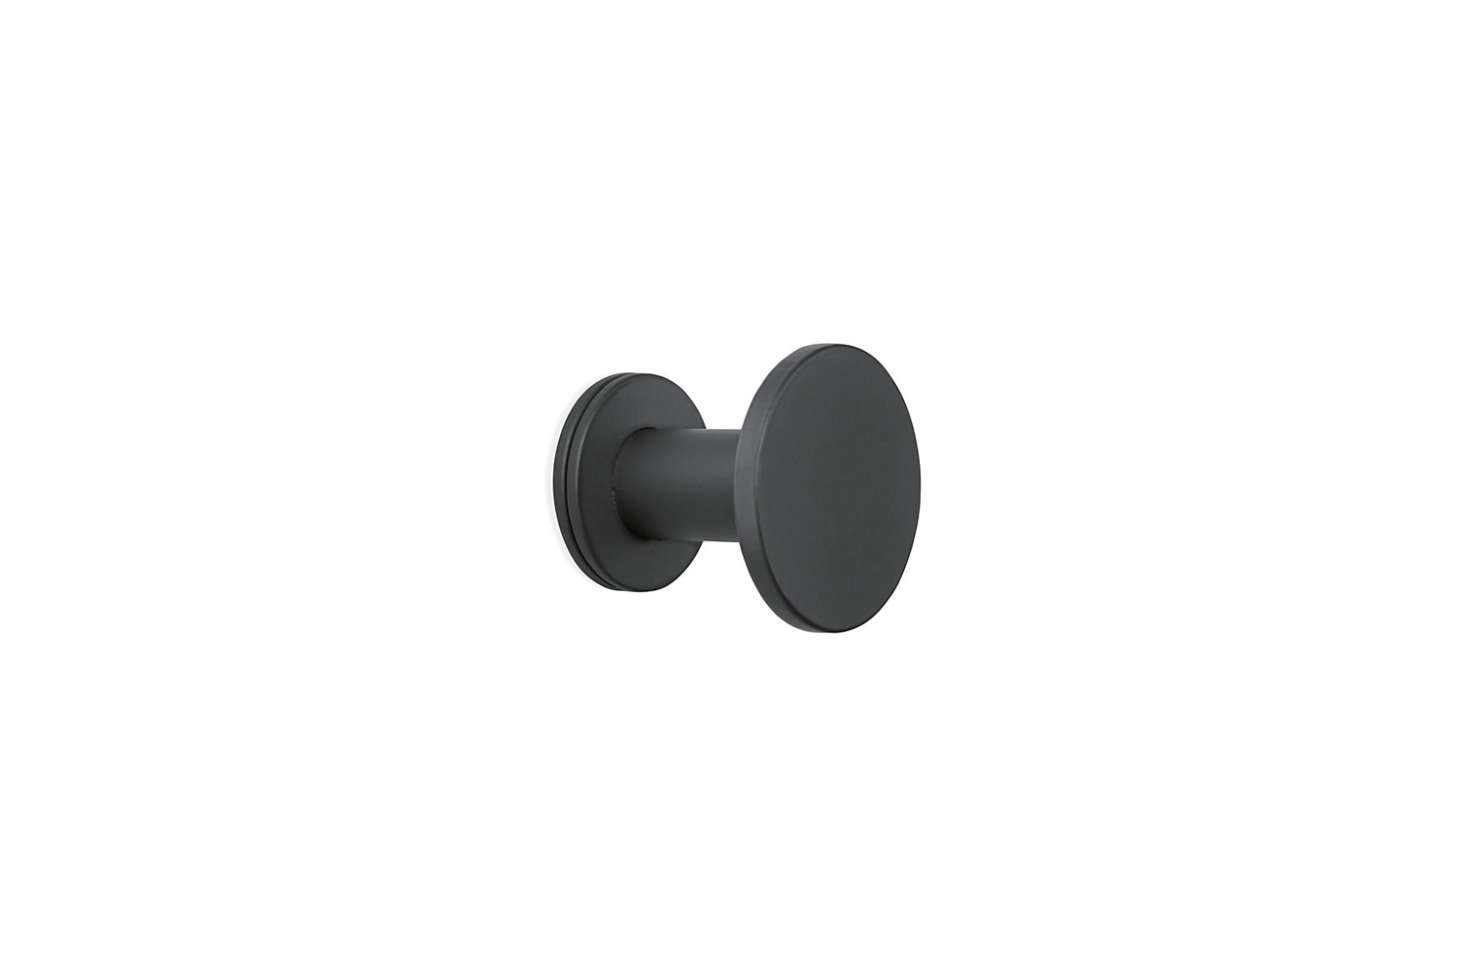 The Room & Board Compass Wall Hook comes in  different powder coated colors; $40 each.